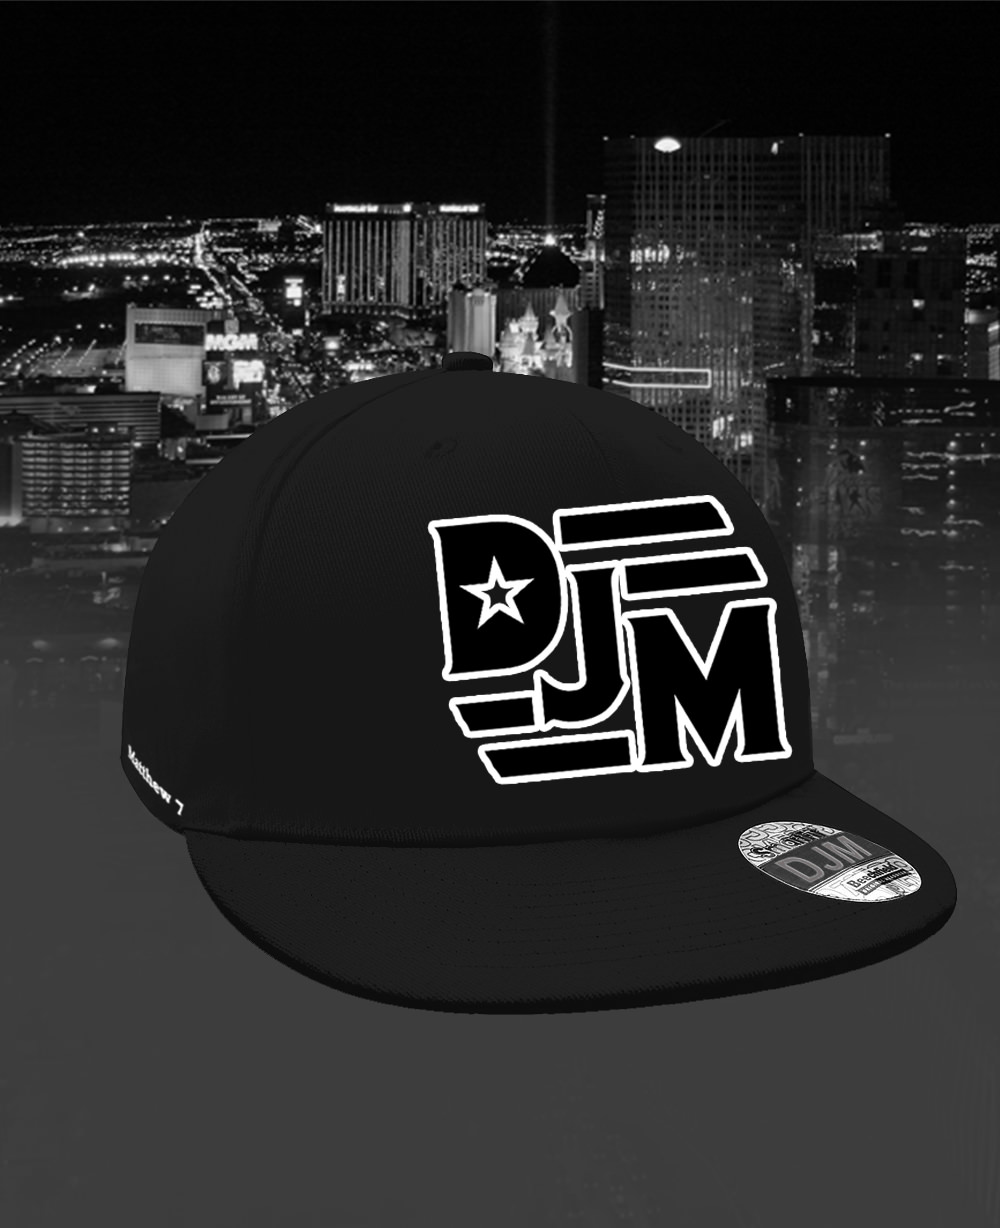 dont_judge_me_mens_star_logo_cap_mini